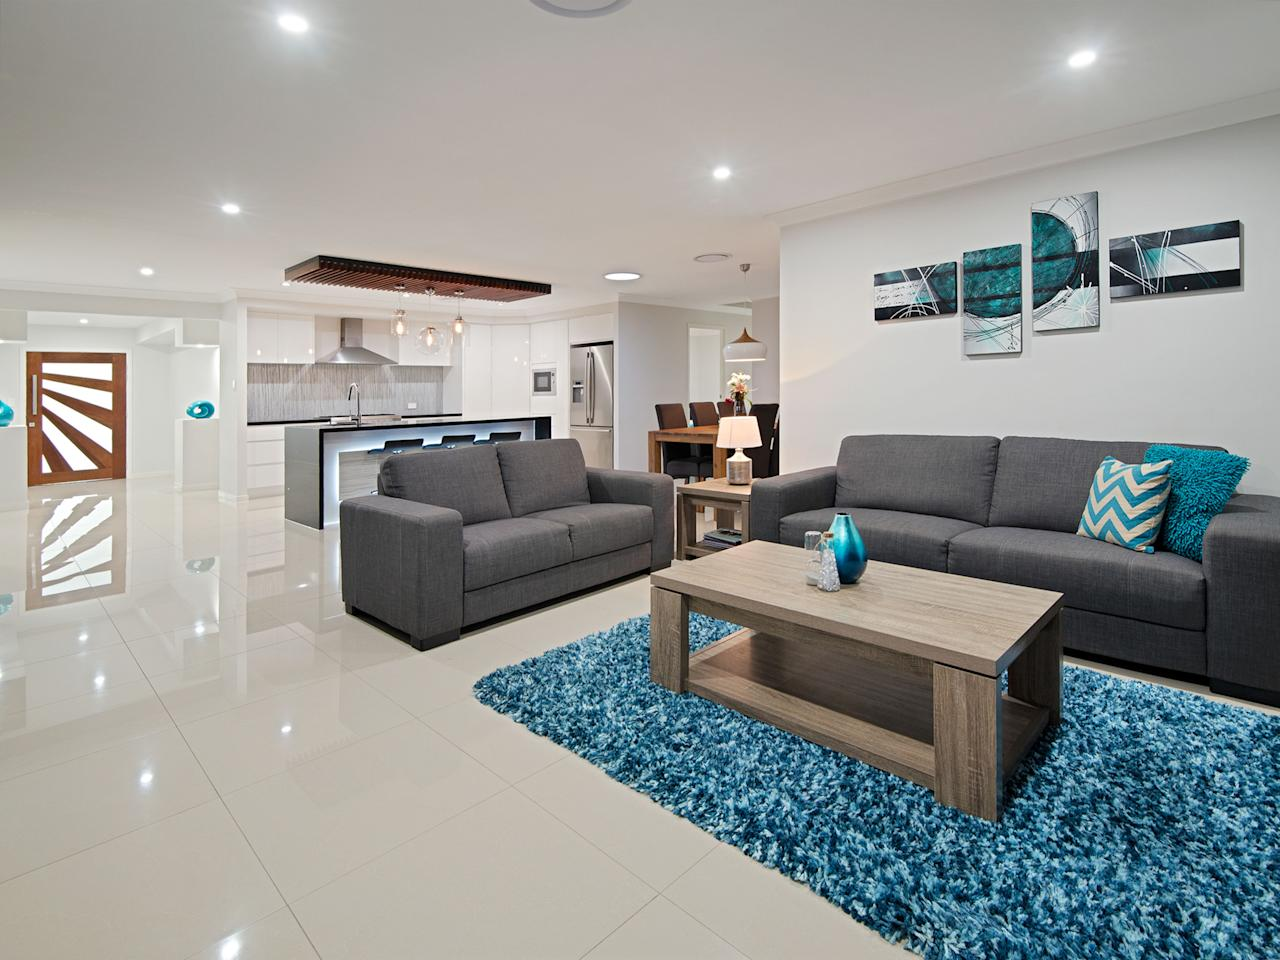 <p>Polished marble floors and soft spot lighting highlight the luxurious finishing to the open plan living room, with the sleek and ultra-modern kitchen area in the background. </p>